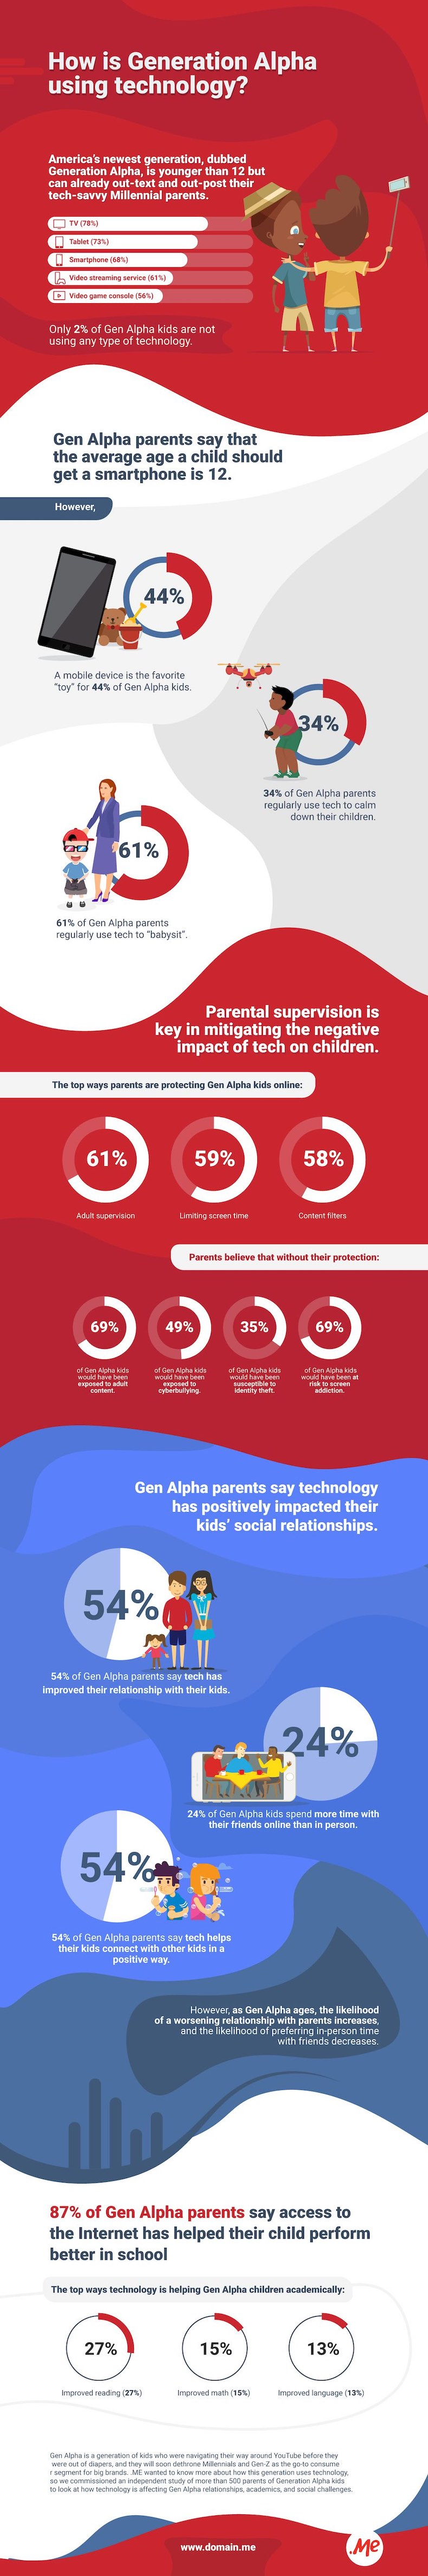 Gen Alpha Technology Use and Habits 1